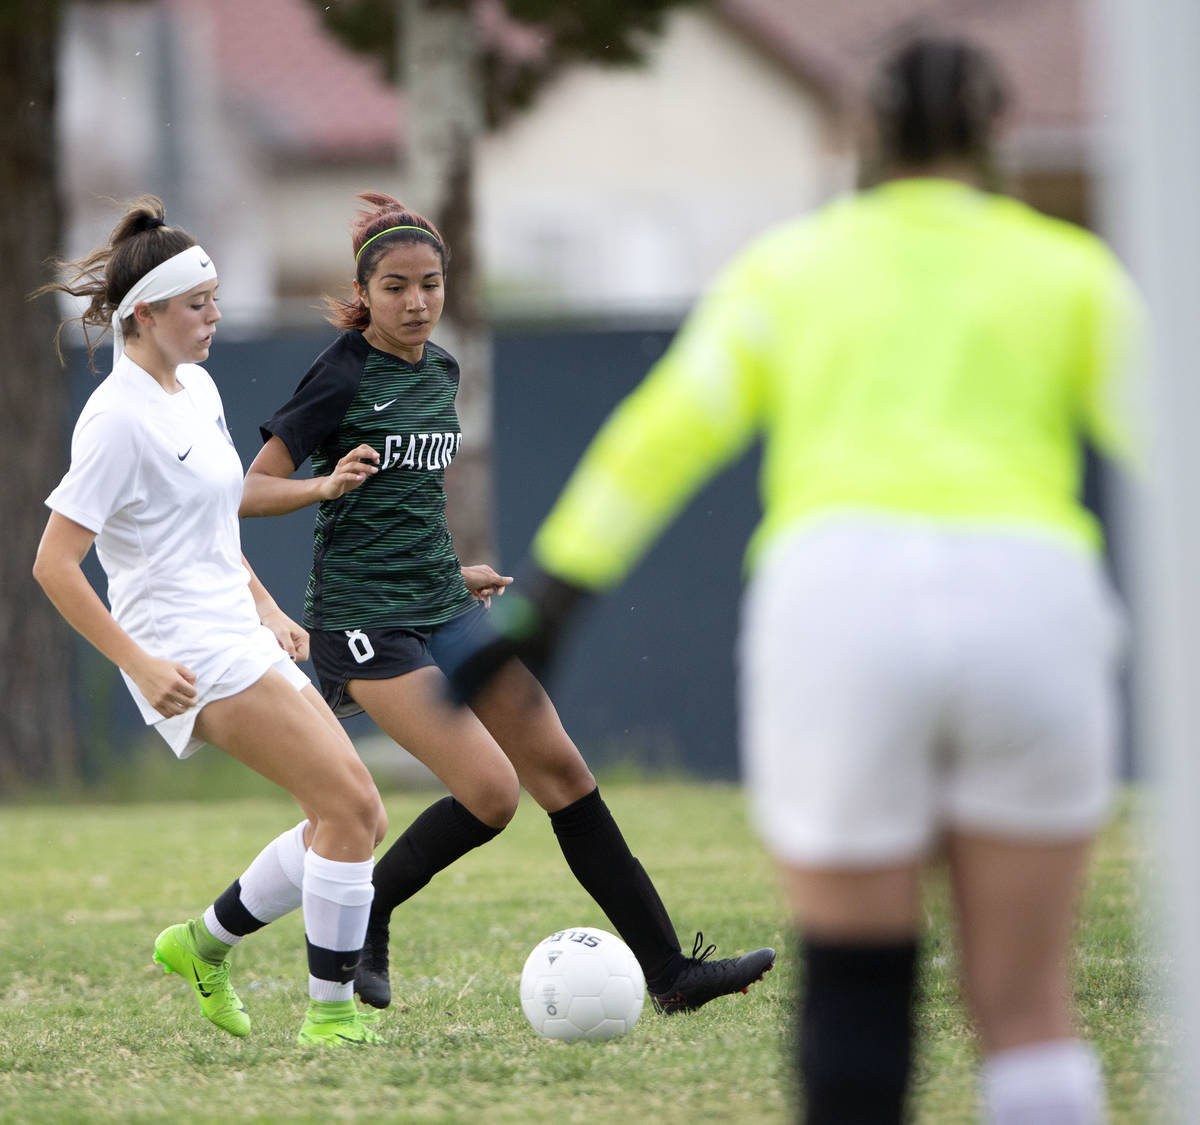 Foothill's Aly Papka (11) catches up with Green Valley's Angelique Ruiz-Salazar (8) while she e ...